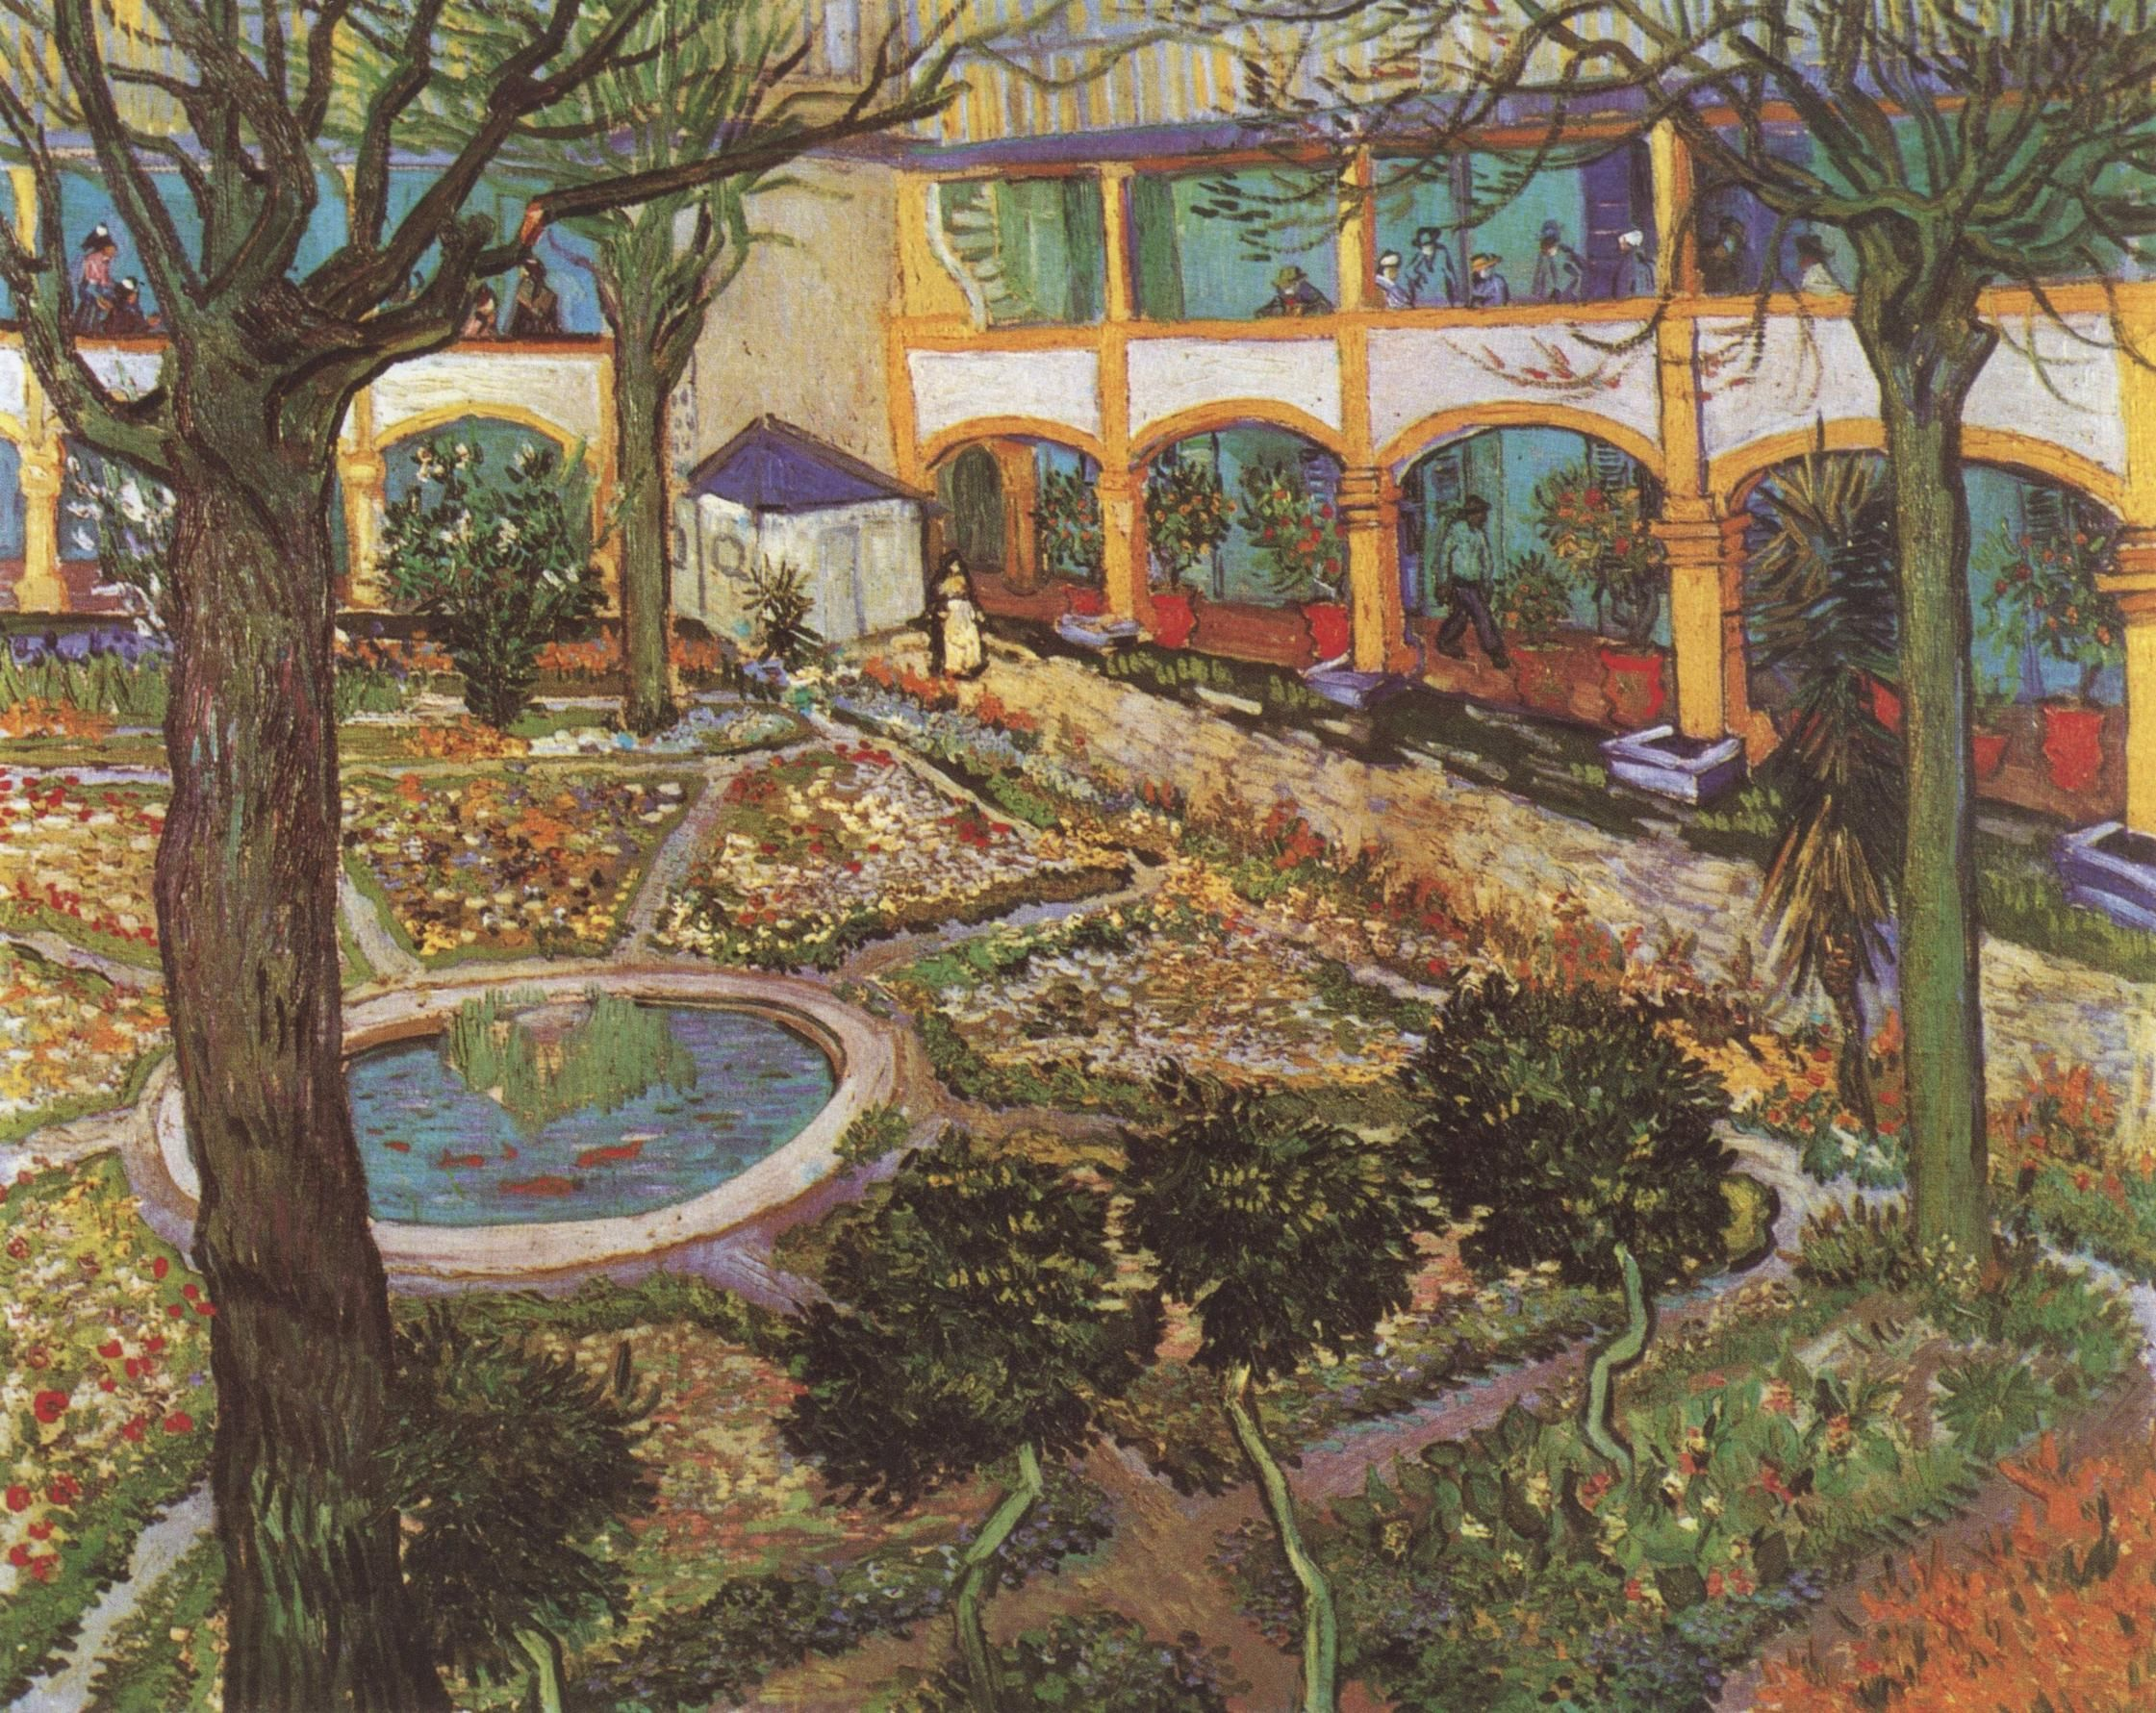 Arte Abstracto Hospital Vincent Van Gogh The Courtyard Of The Arles S Hospital 1889